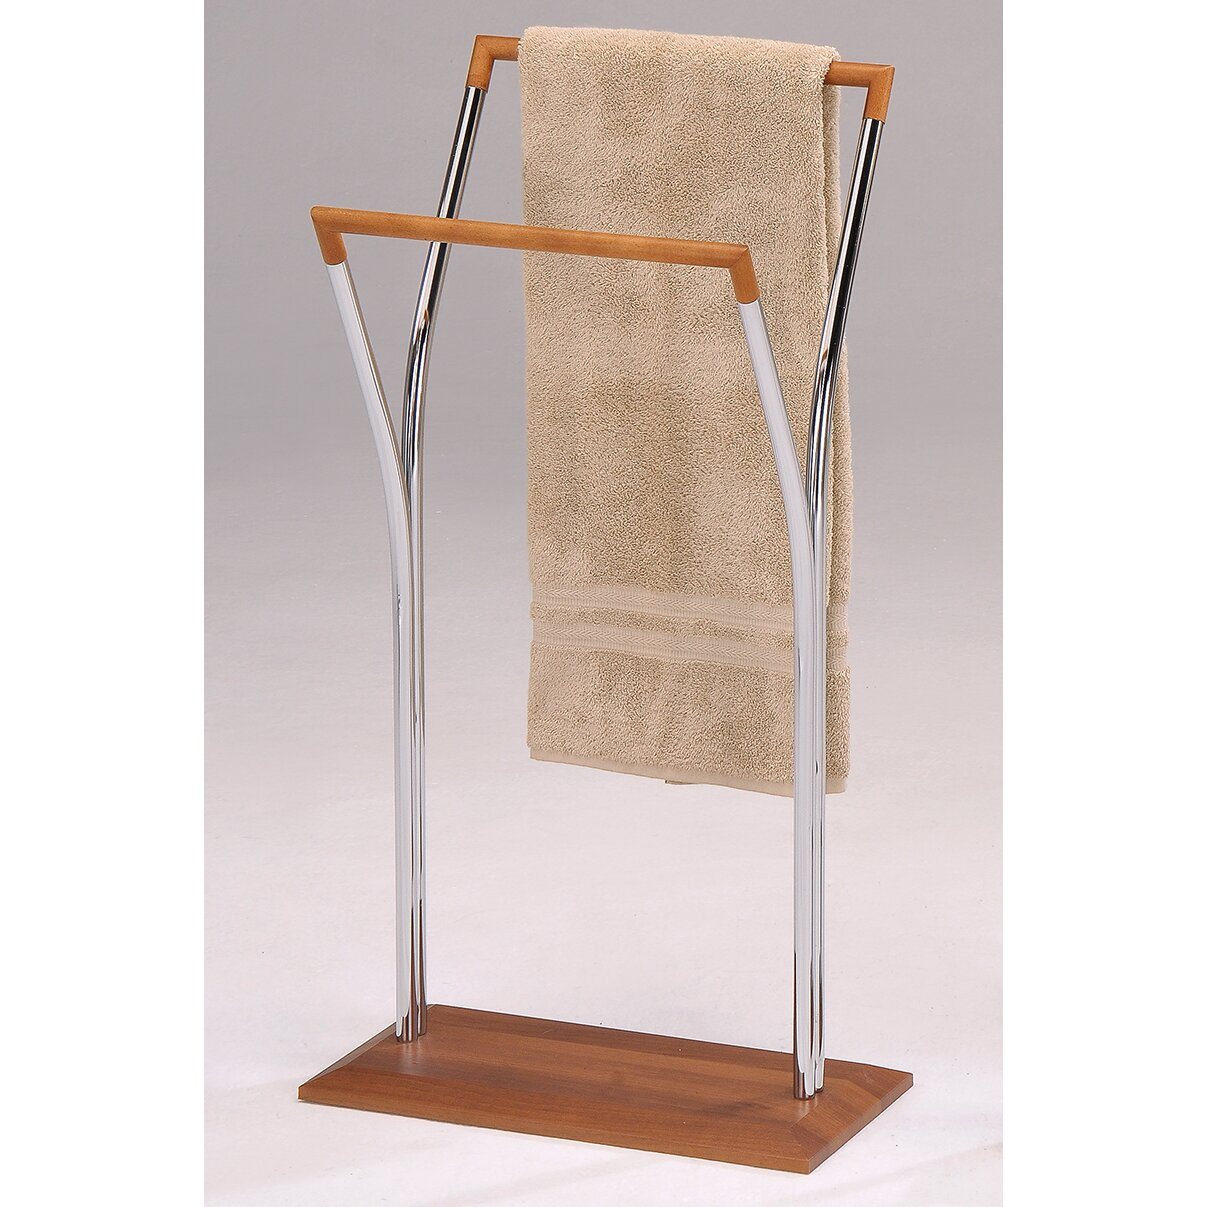 Inroom designs countertop towel stand wayfair In room designs